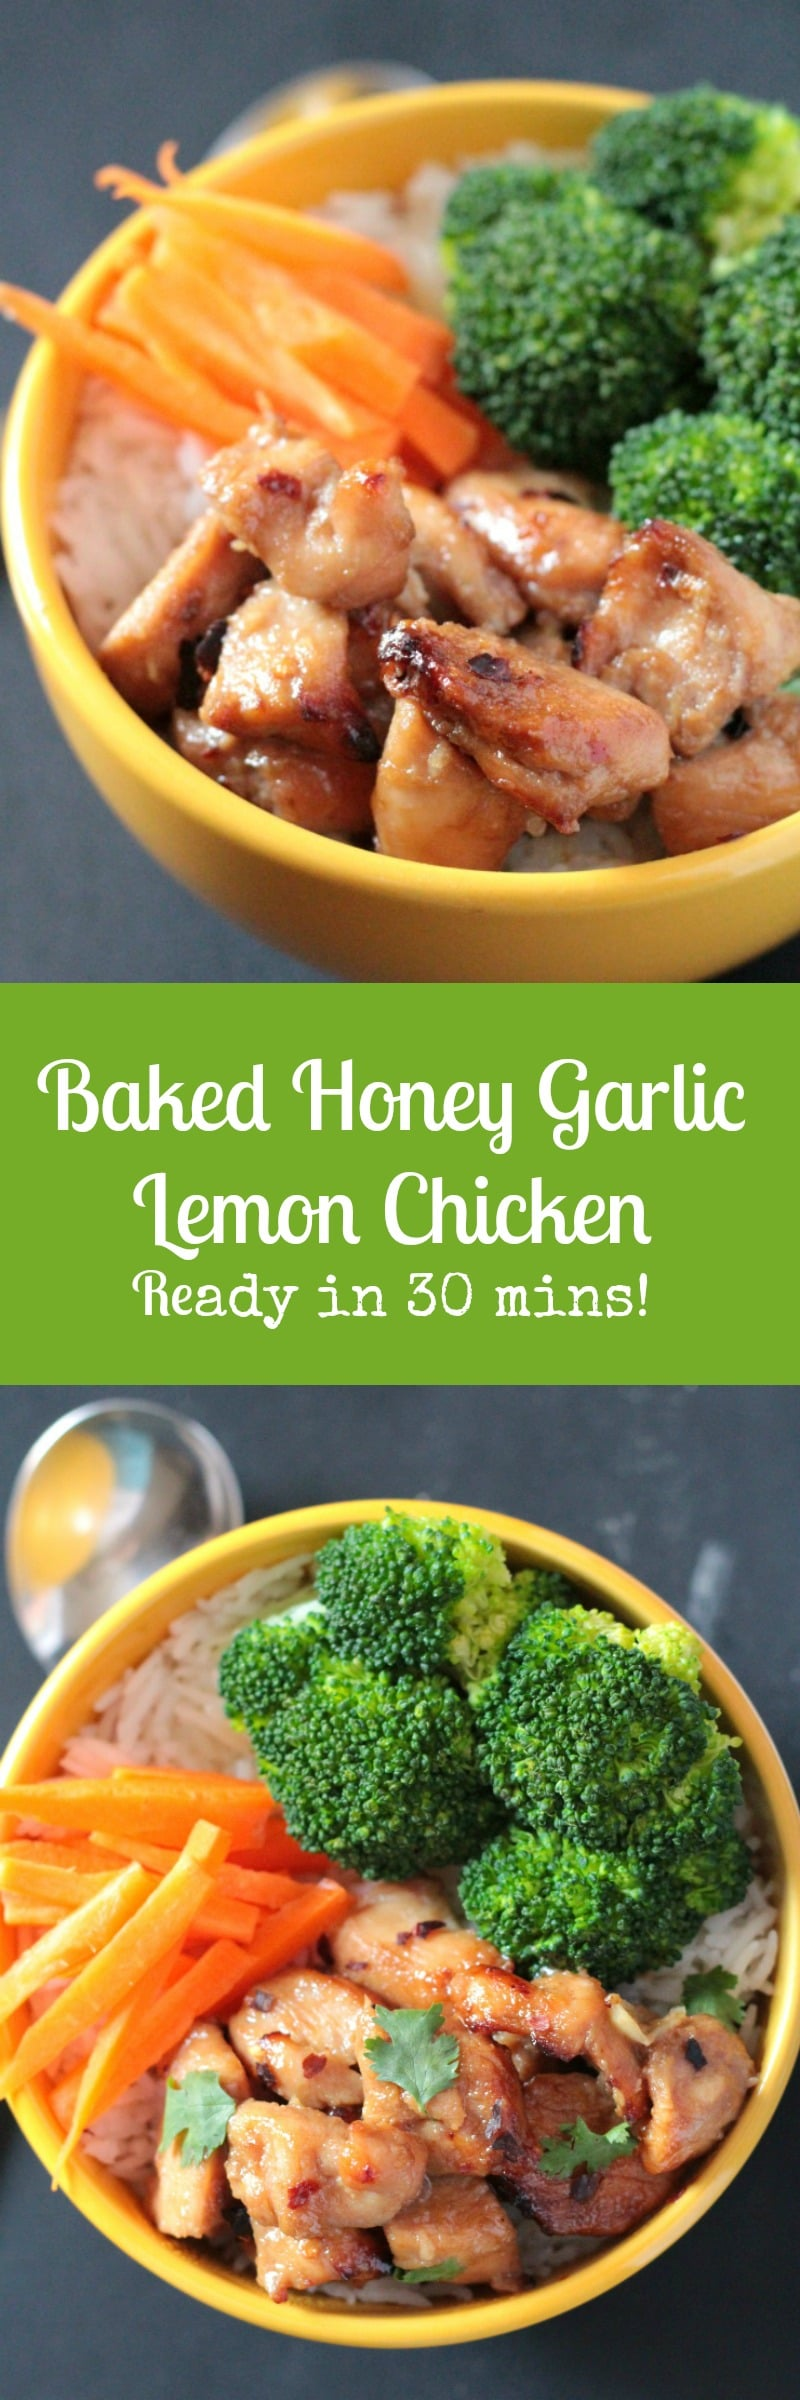 Baked Honey Garlic Lemon Chicken - 30 minute meal!